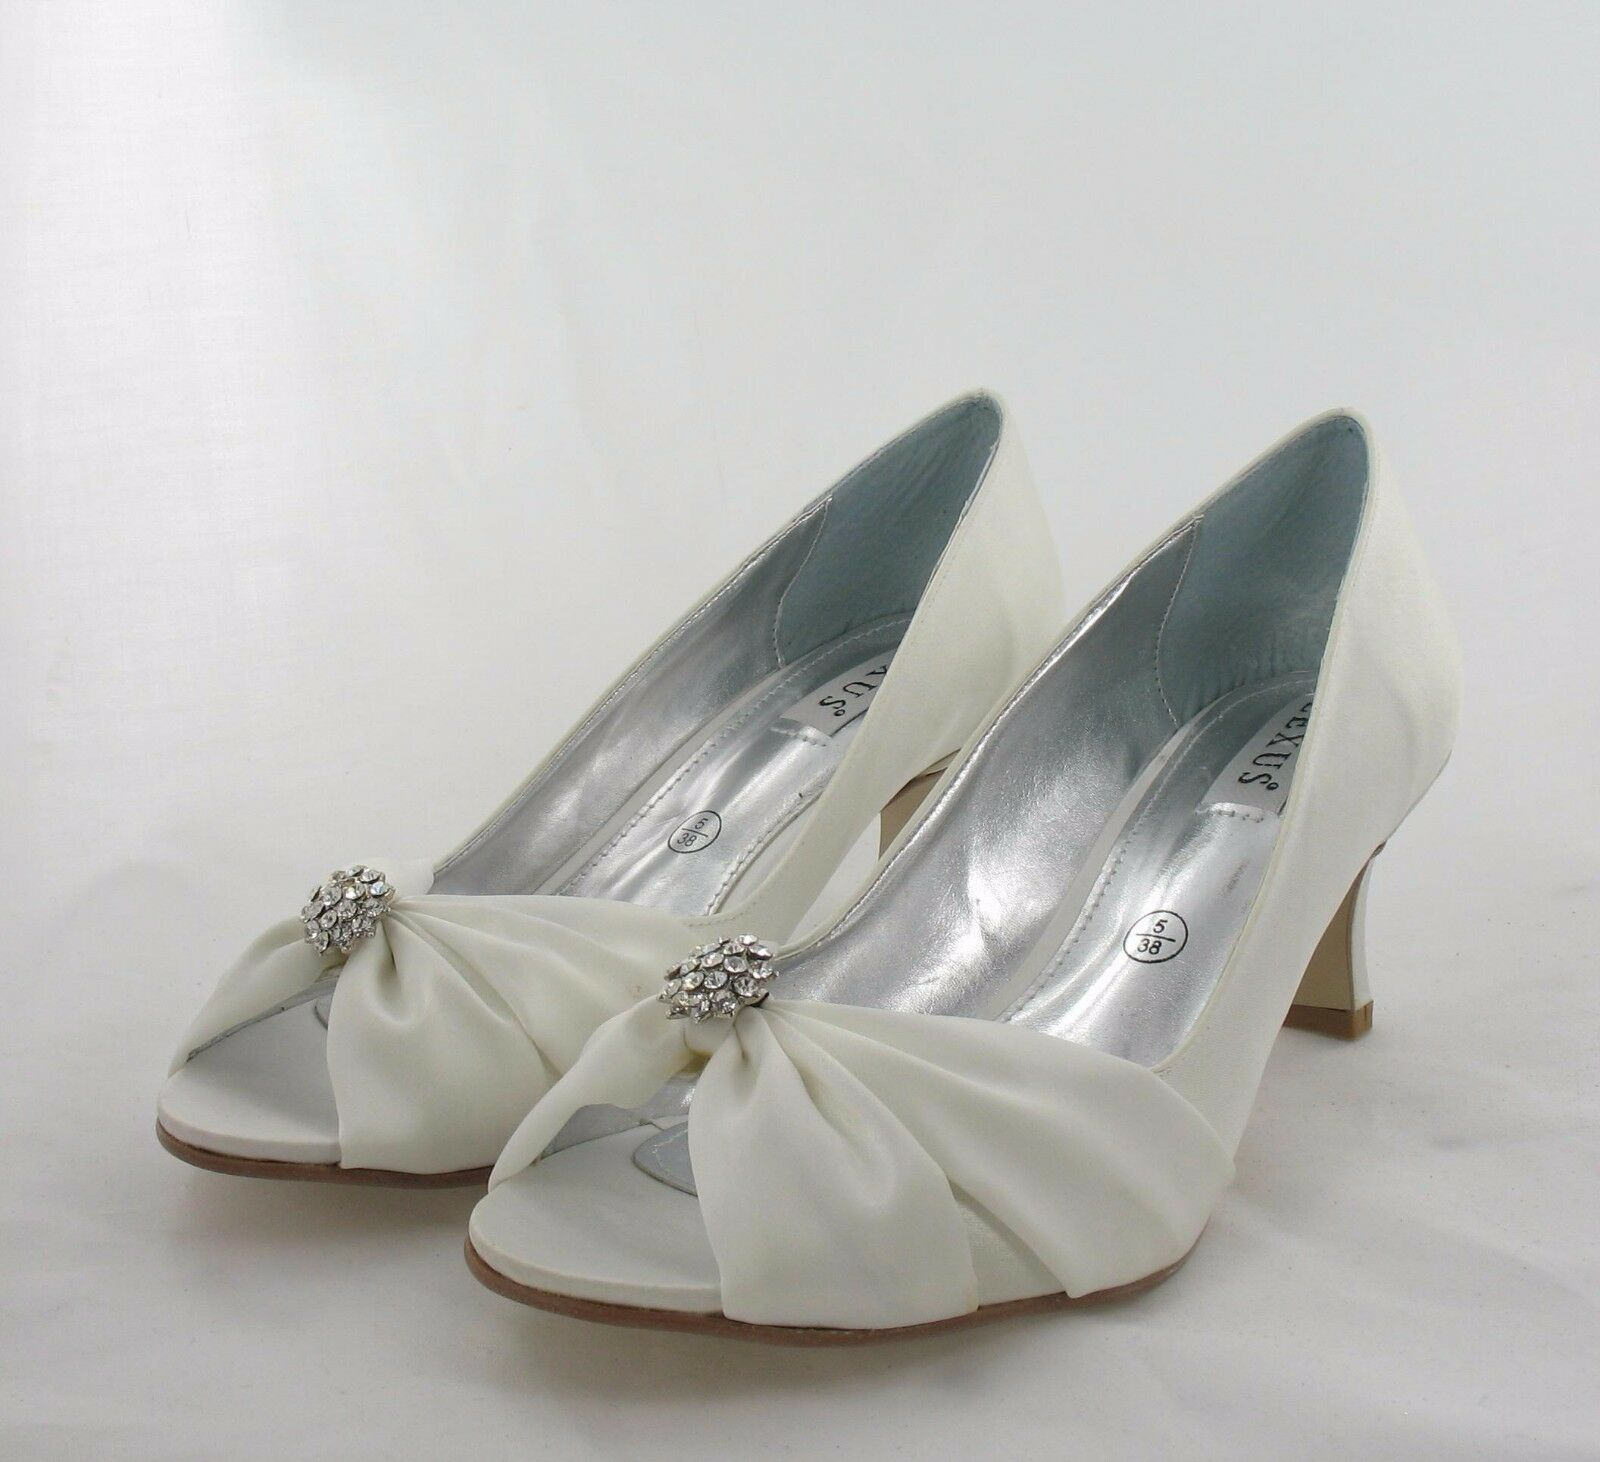 Ladies shoes Size 5 Ivory Party, Prom, Wedding Evening (K5 7 17-11)